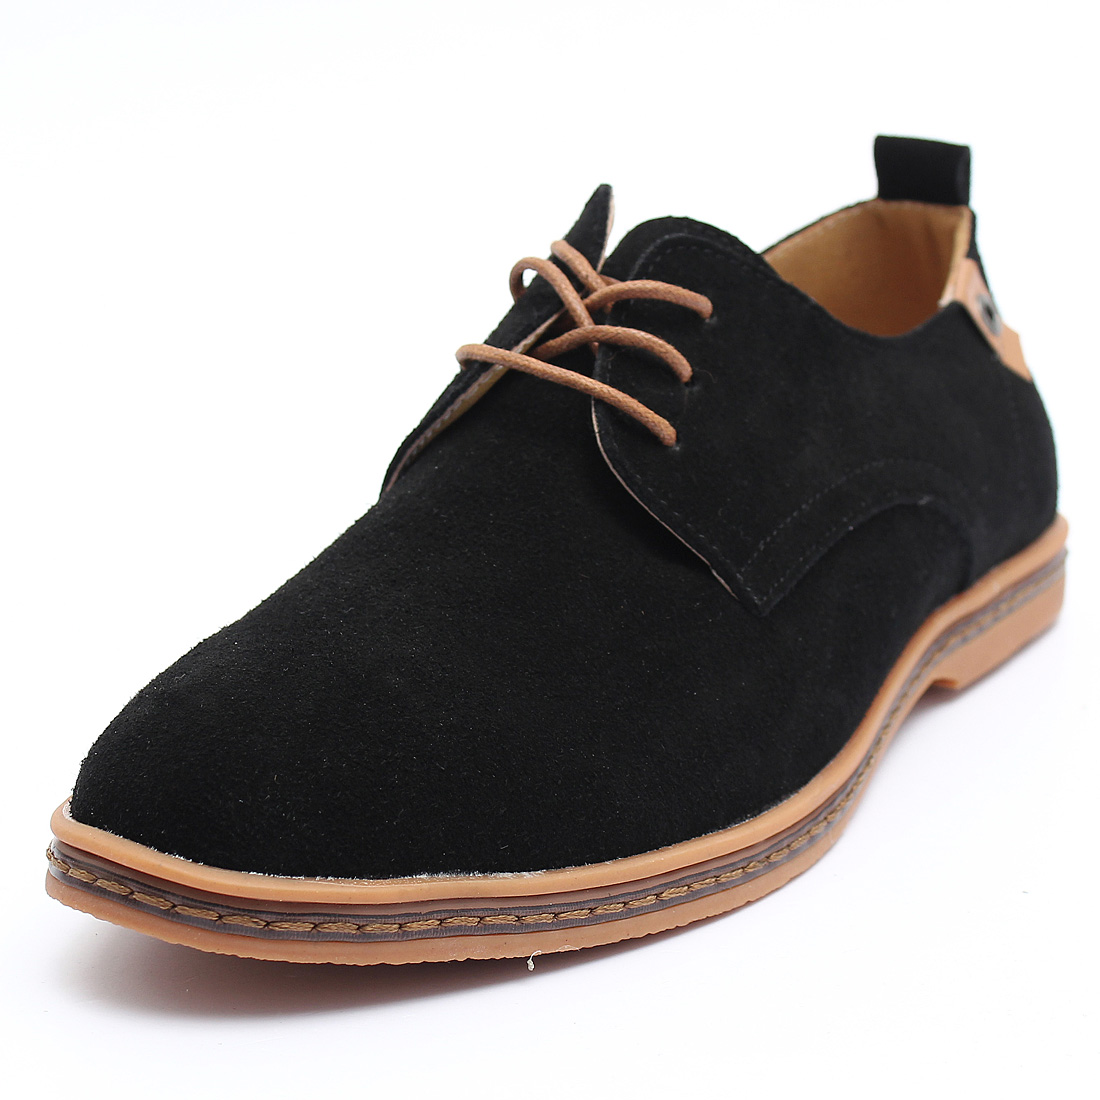 suede leather shoes s dress formal oxfords lace up